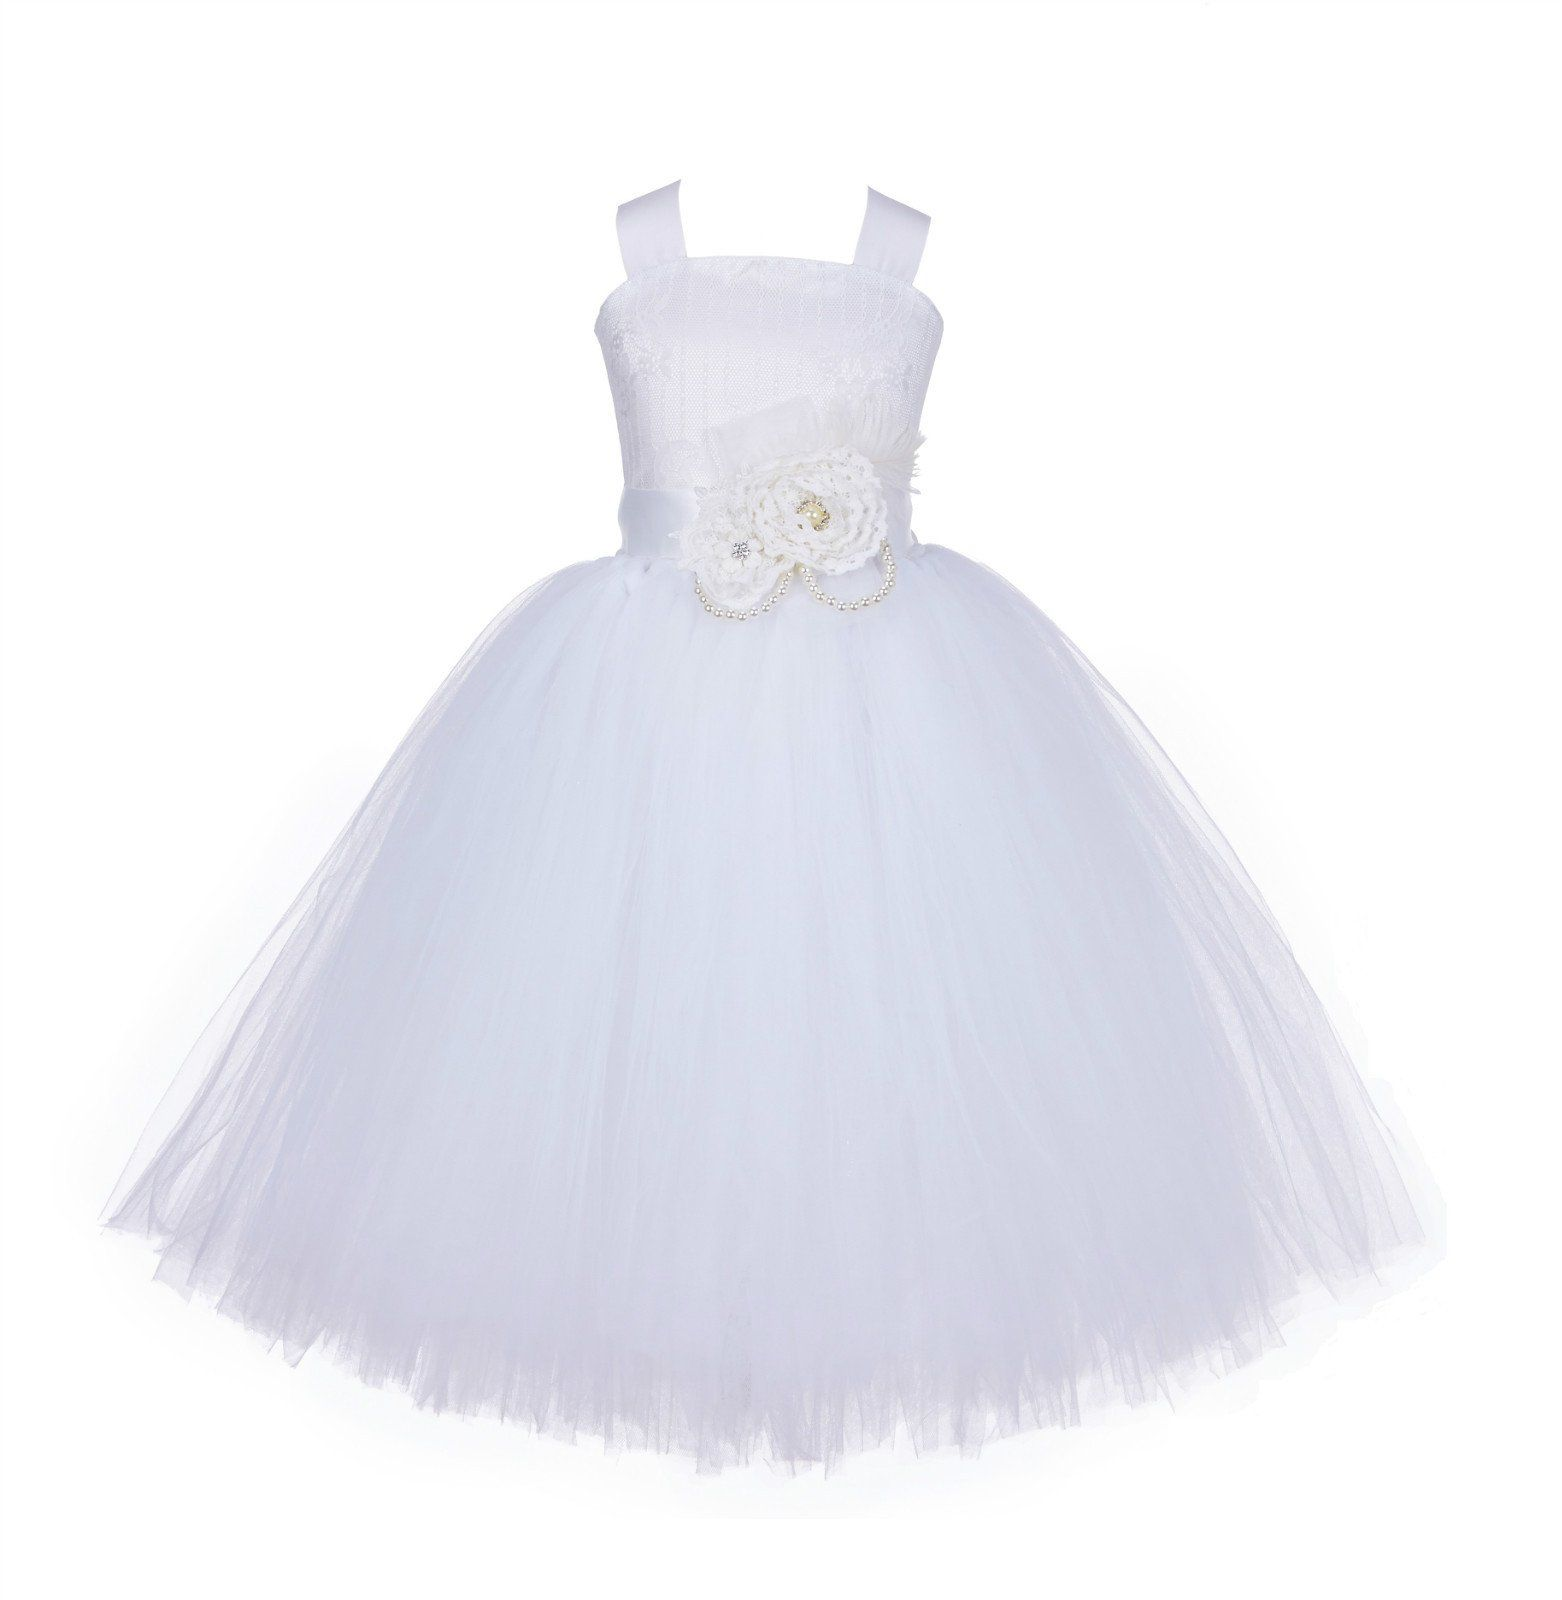 da89a92c0c96 Tutu Tulle Criss-Cross Back Lace Tulle Flower Girl Dress Wedding Pageant  Toddler Holiday Easter 119